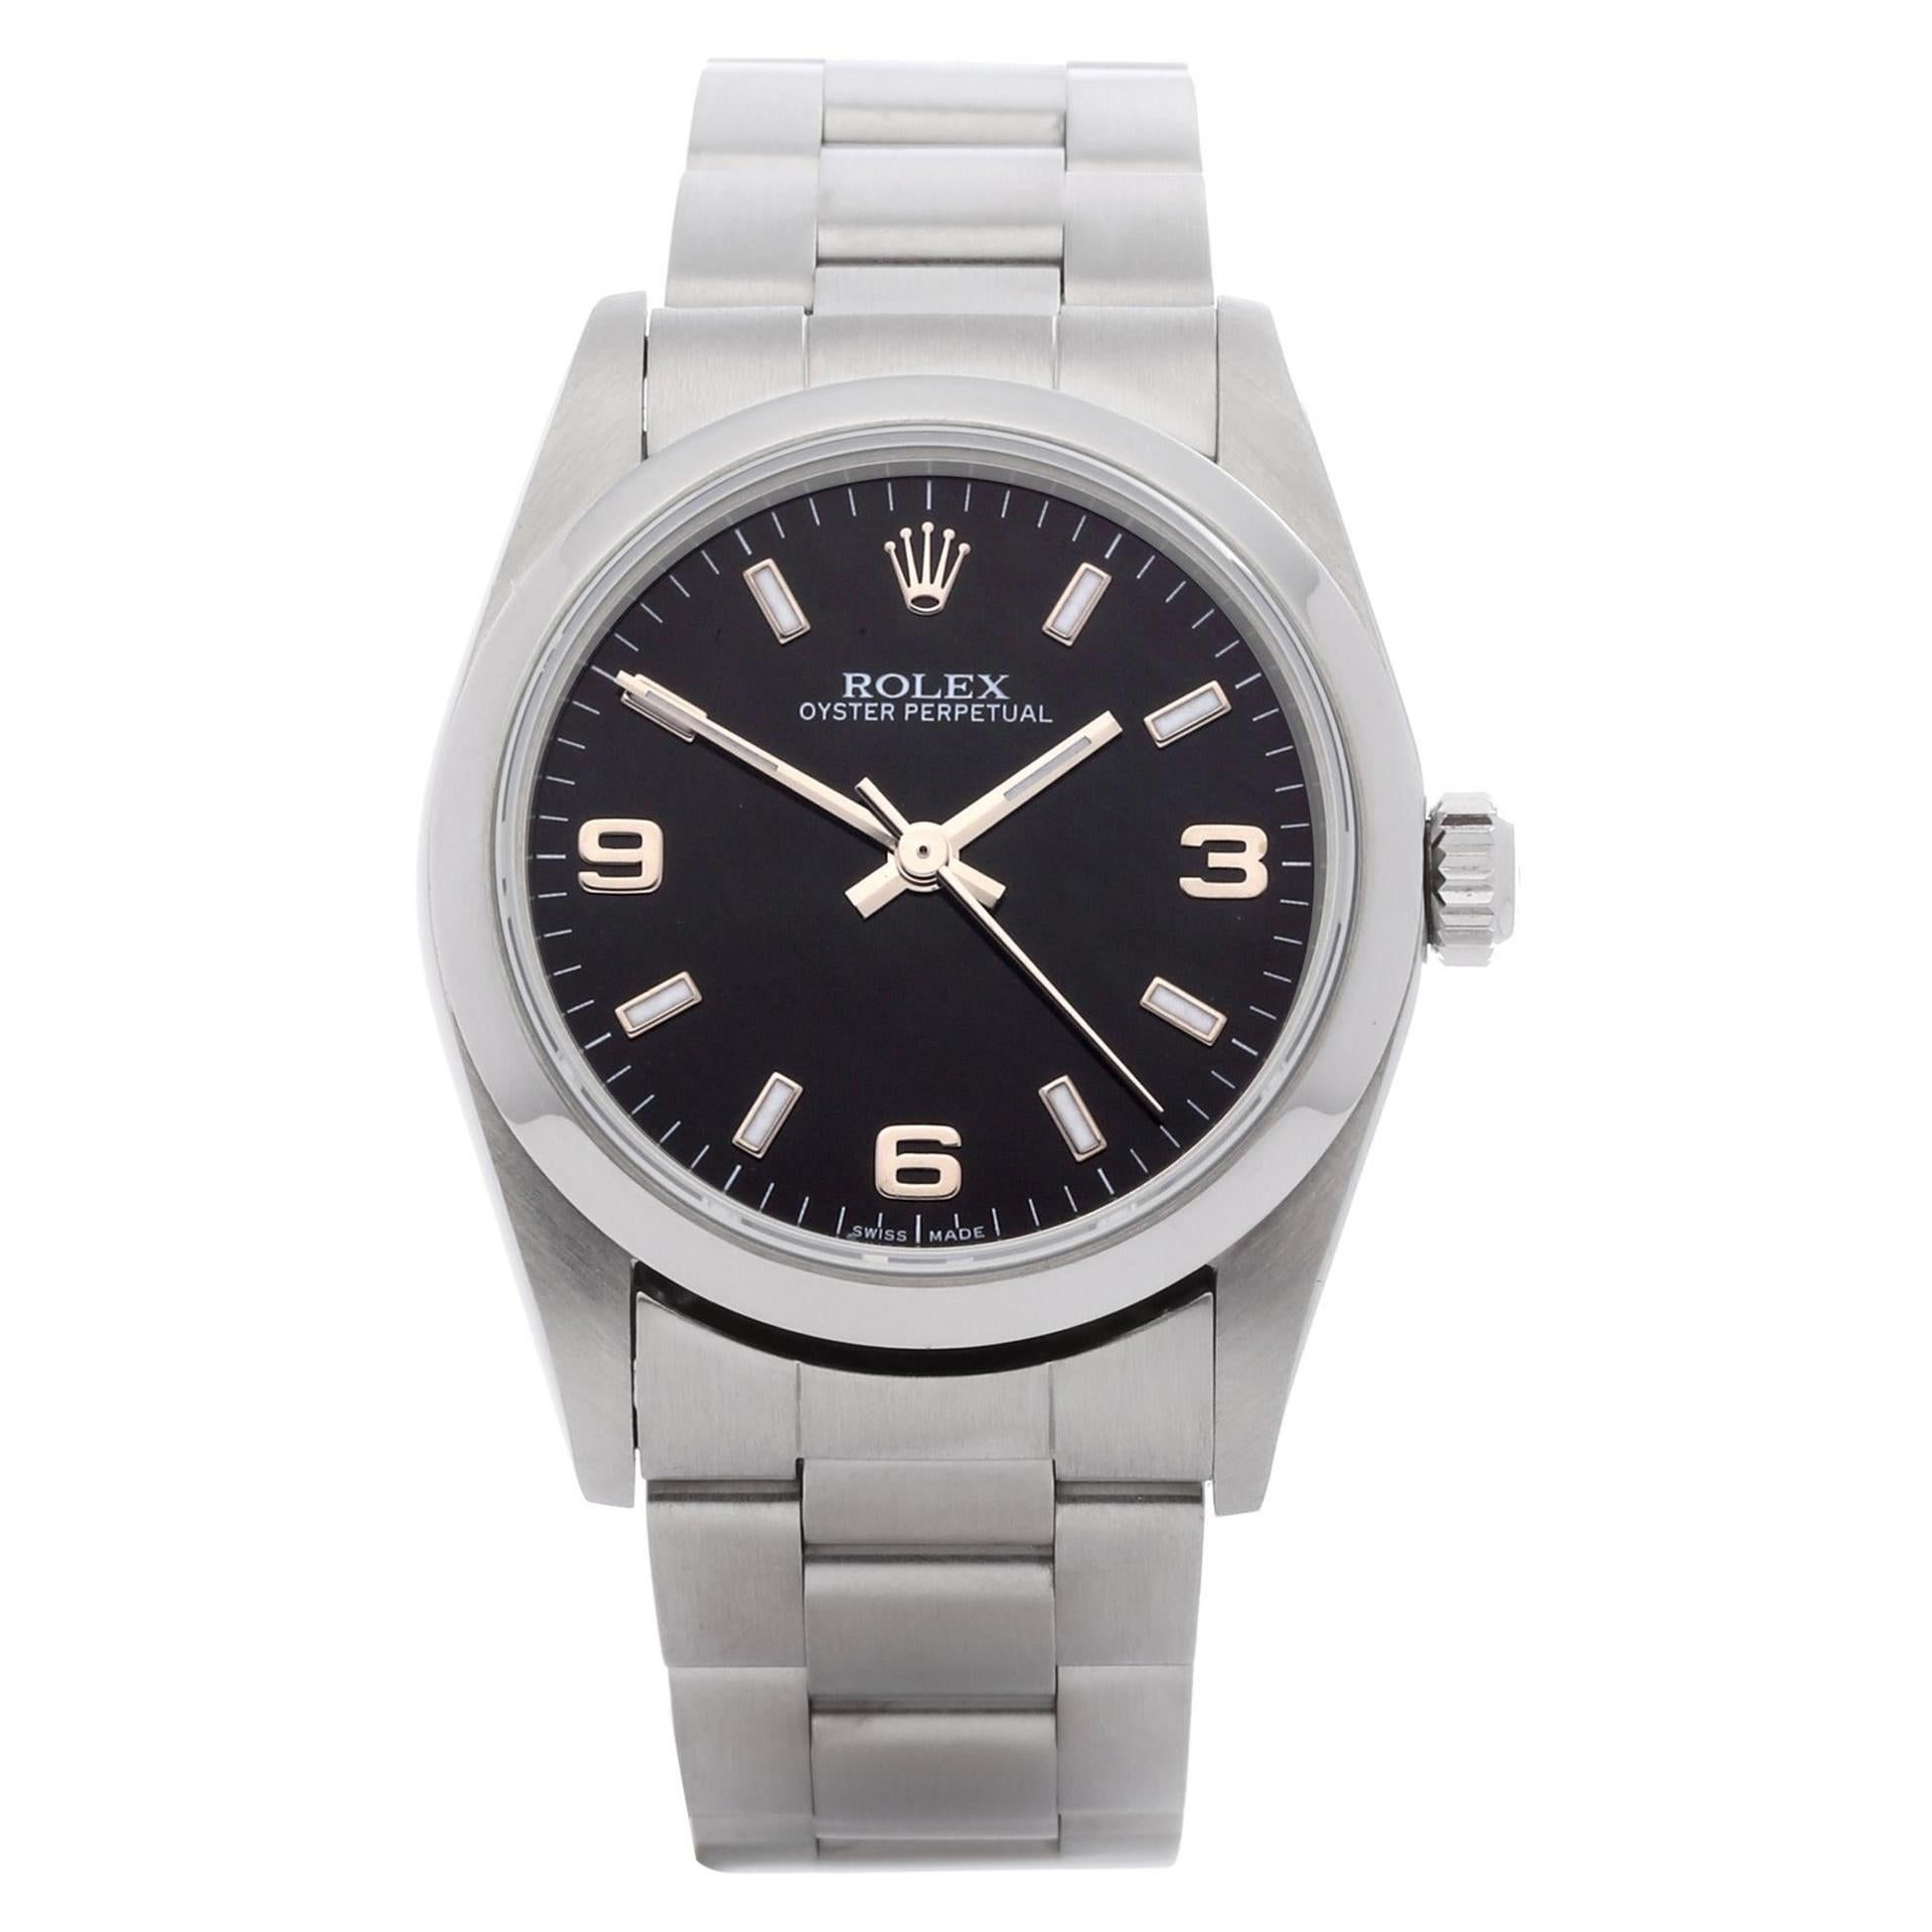 Rolex Oyster Perpetual 31 77080 Unisex Stainless Steel Watch